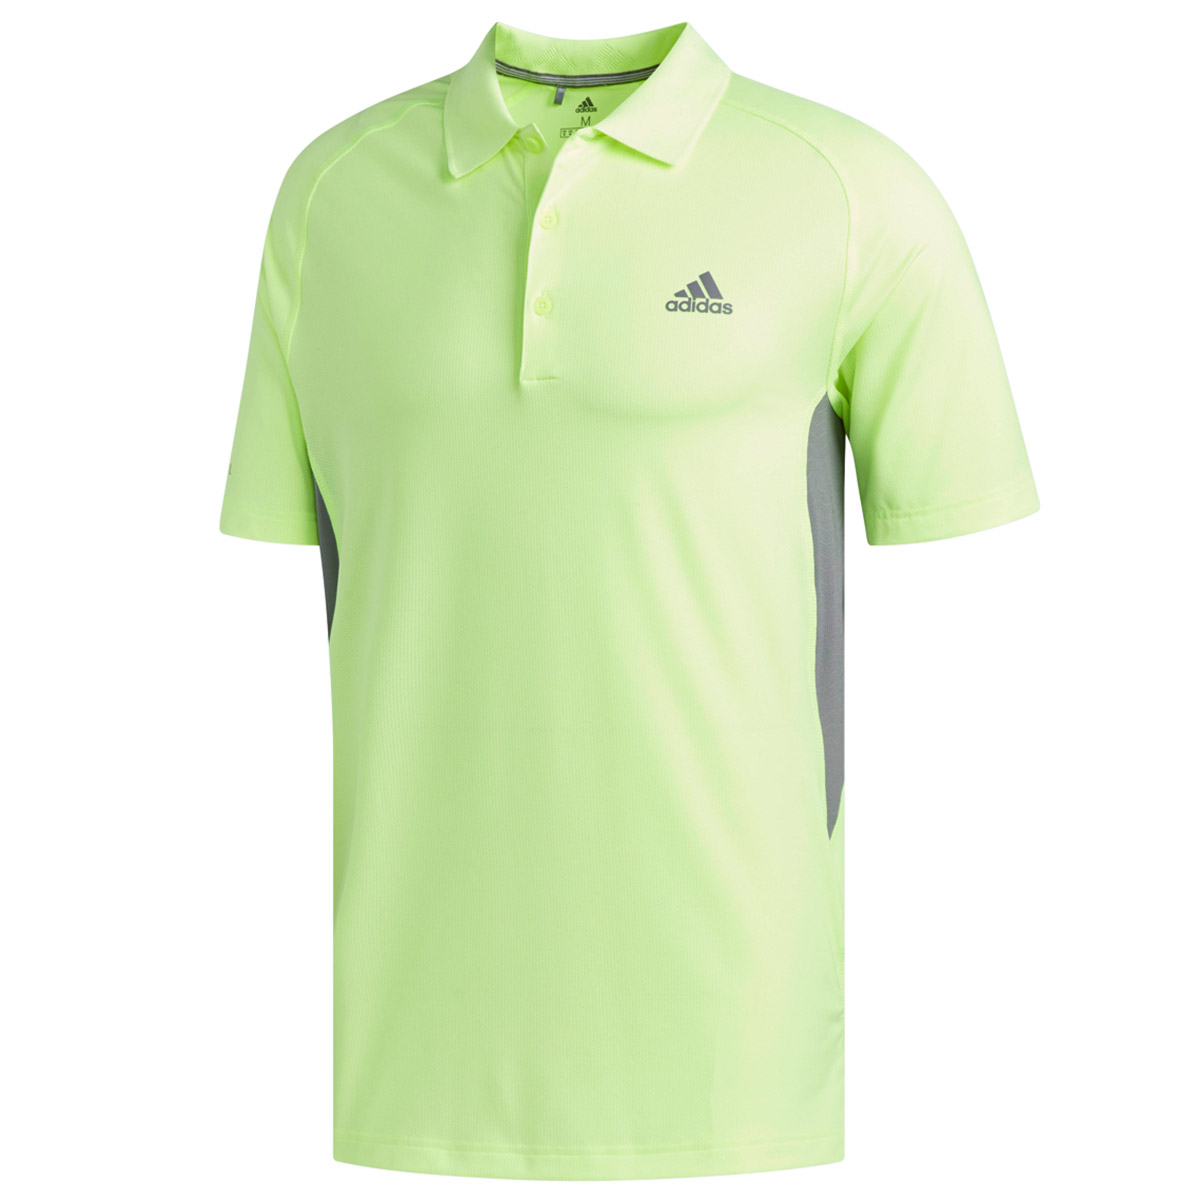 61e62ffdd0 adidas Golf Ultimate 365 Climacool Solid Polo Shirt from american golf